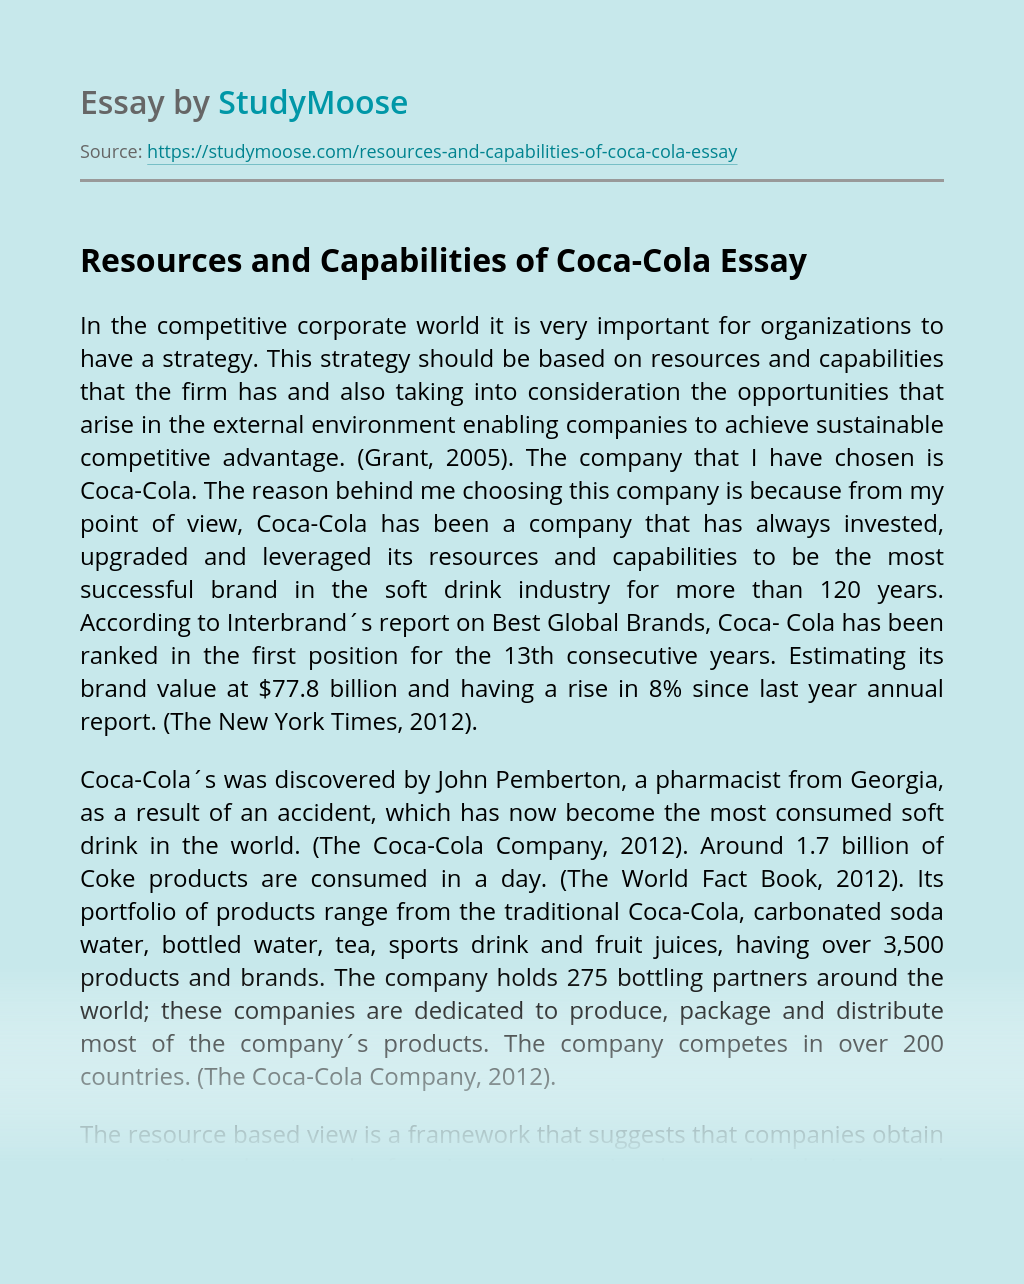 Resources and Capabilities of Coca-Cola